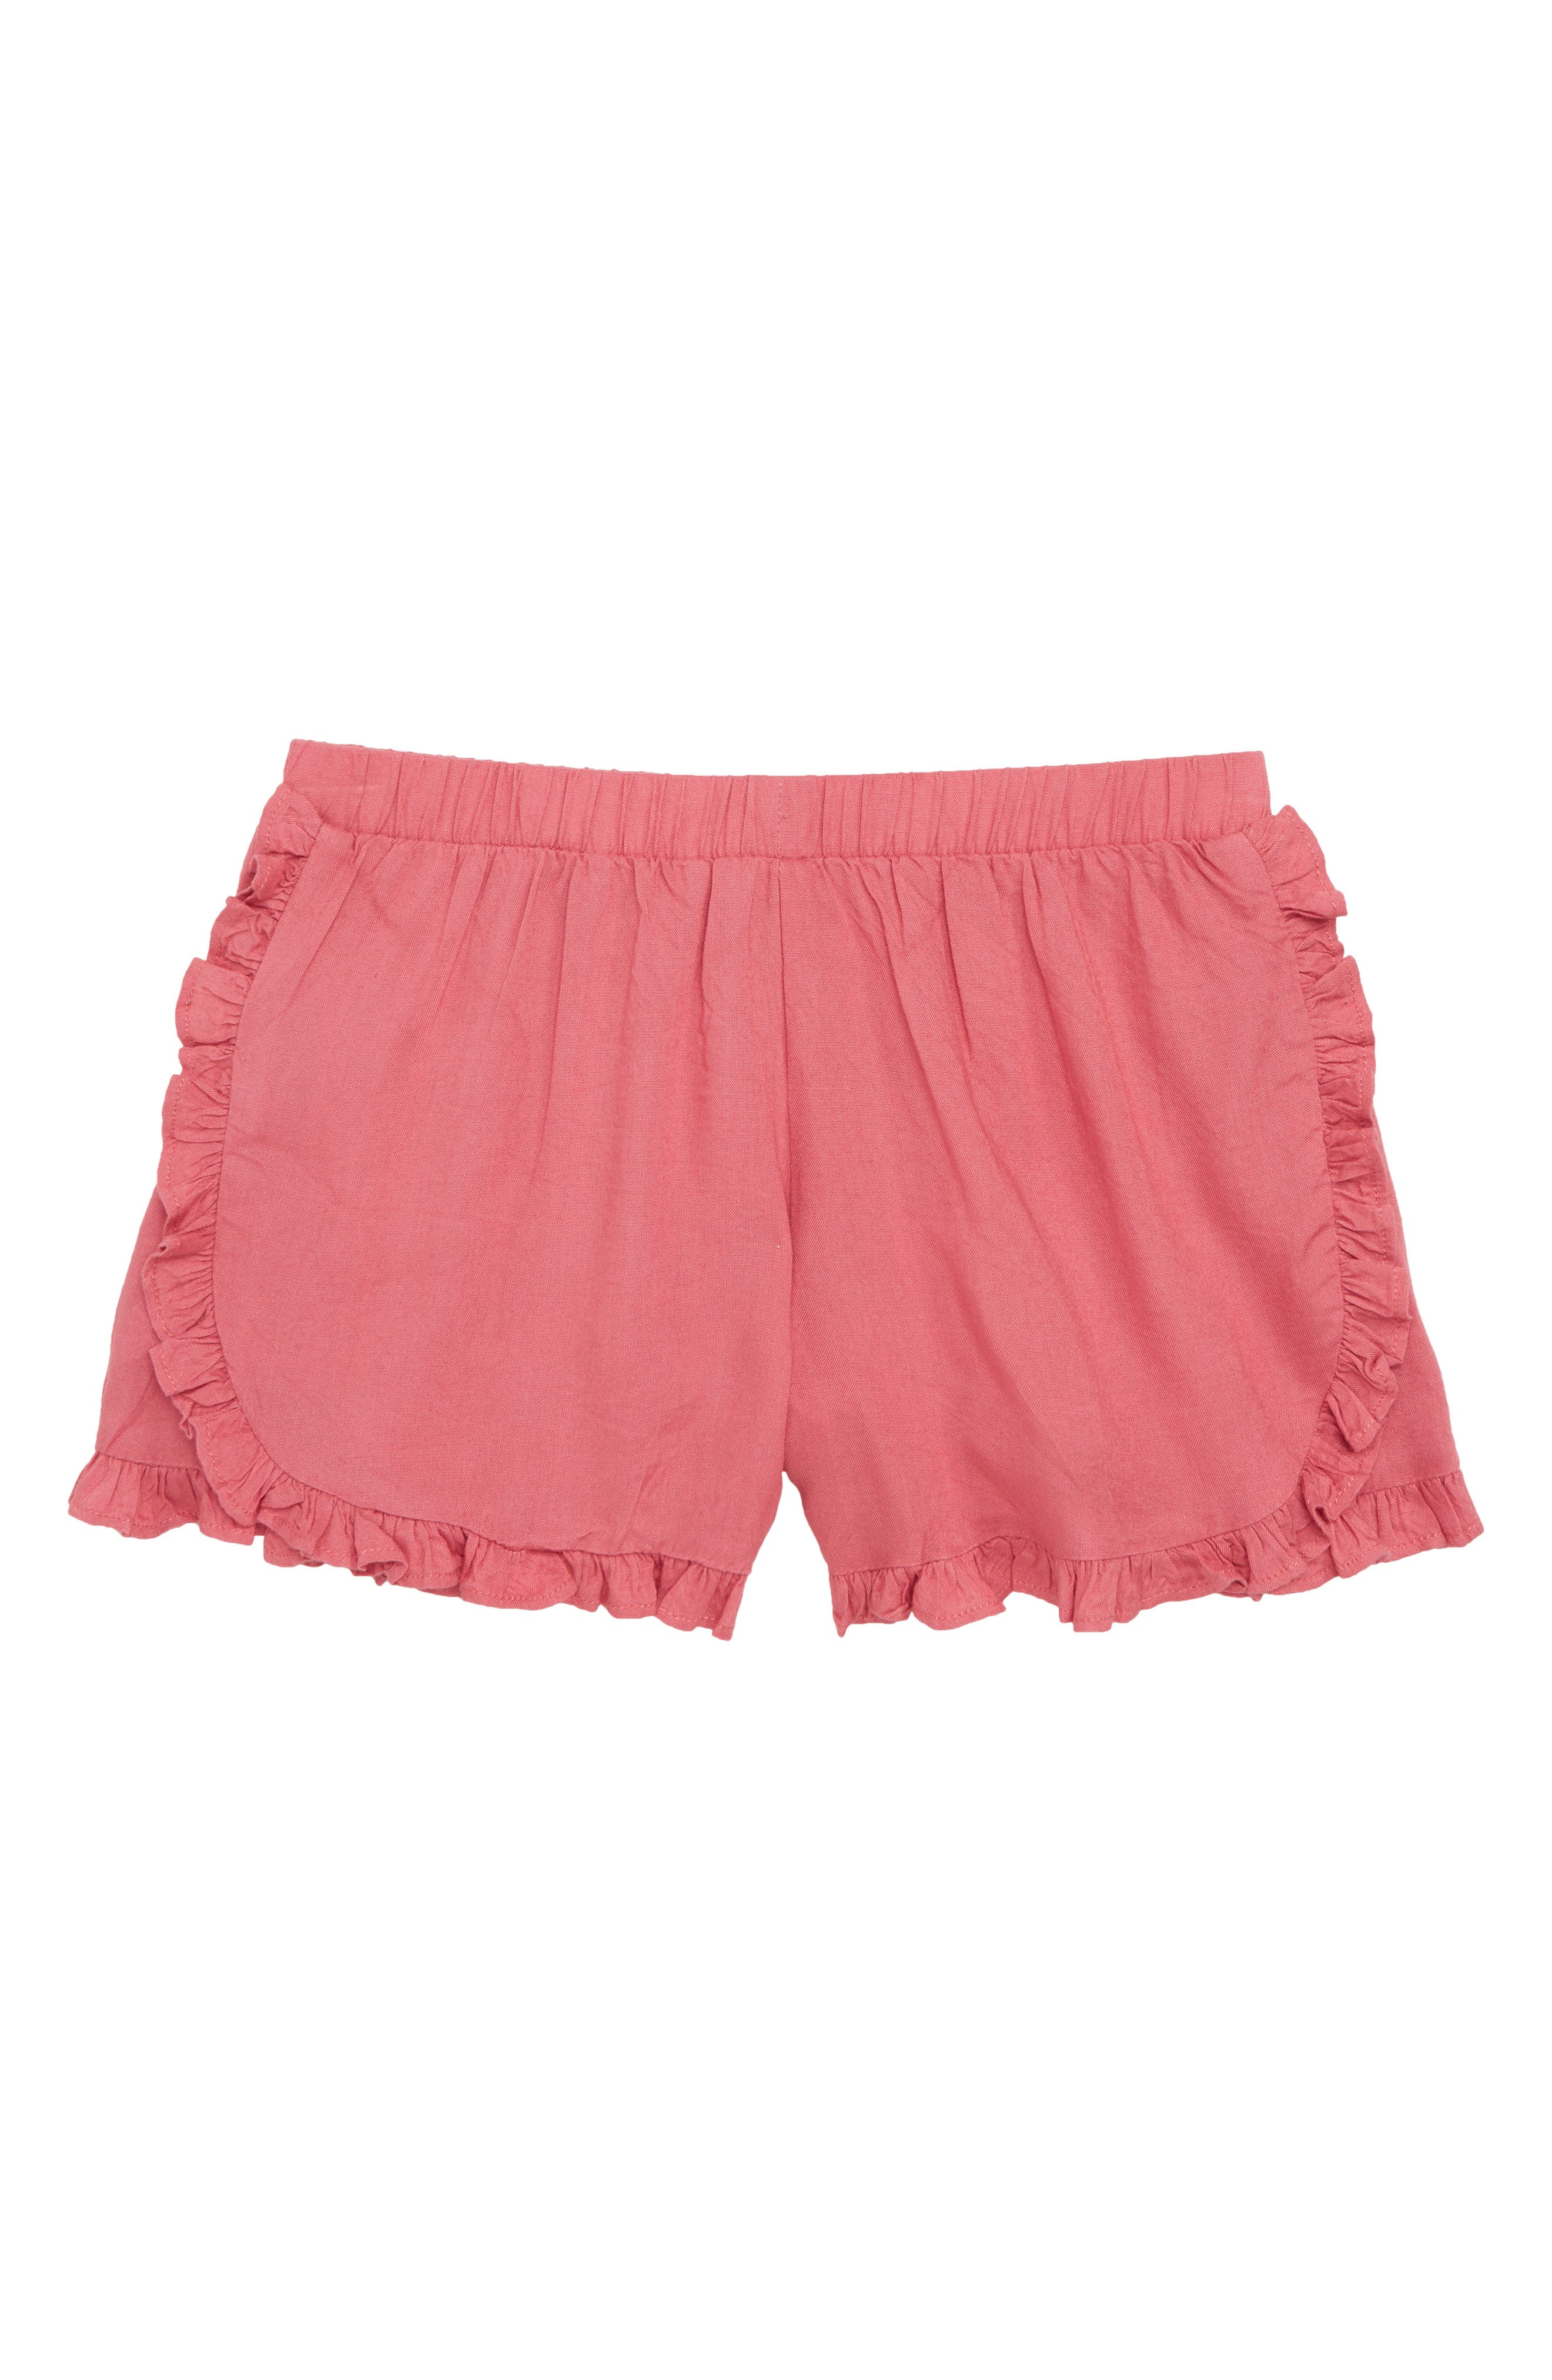 Tanya Shorts,                             Main thumbnail 1, color,                             Rose